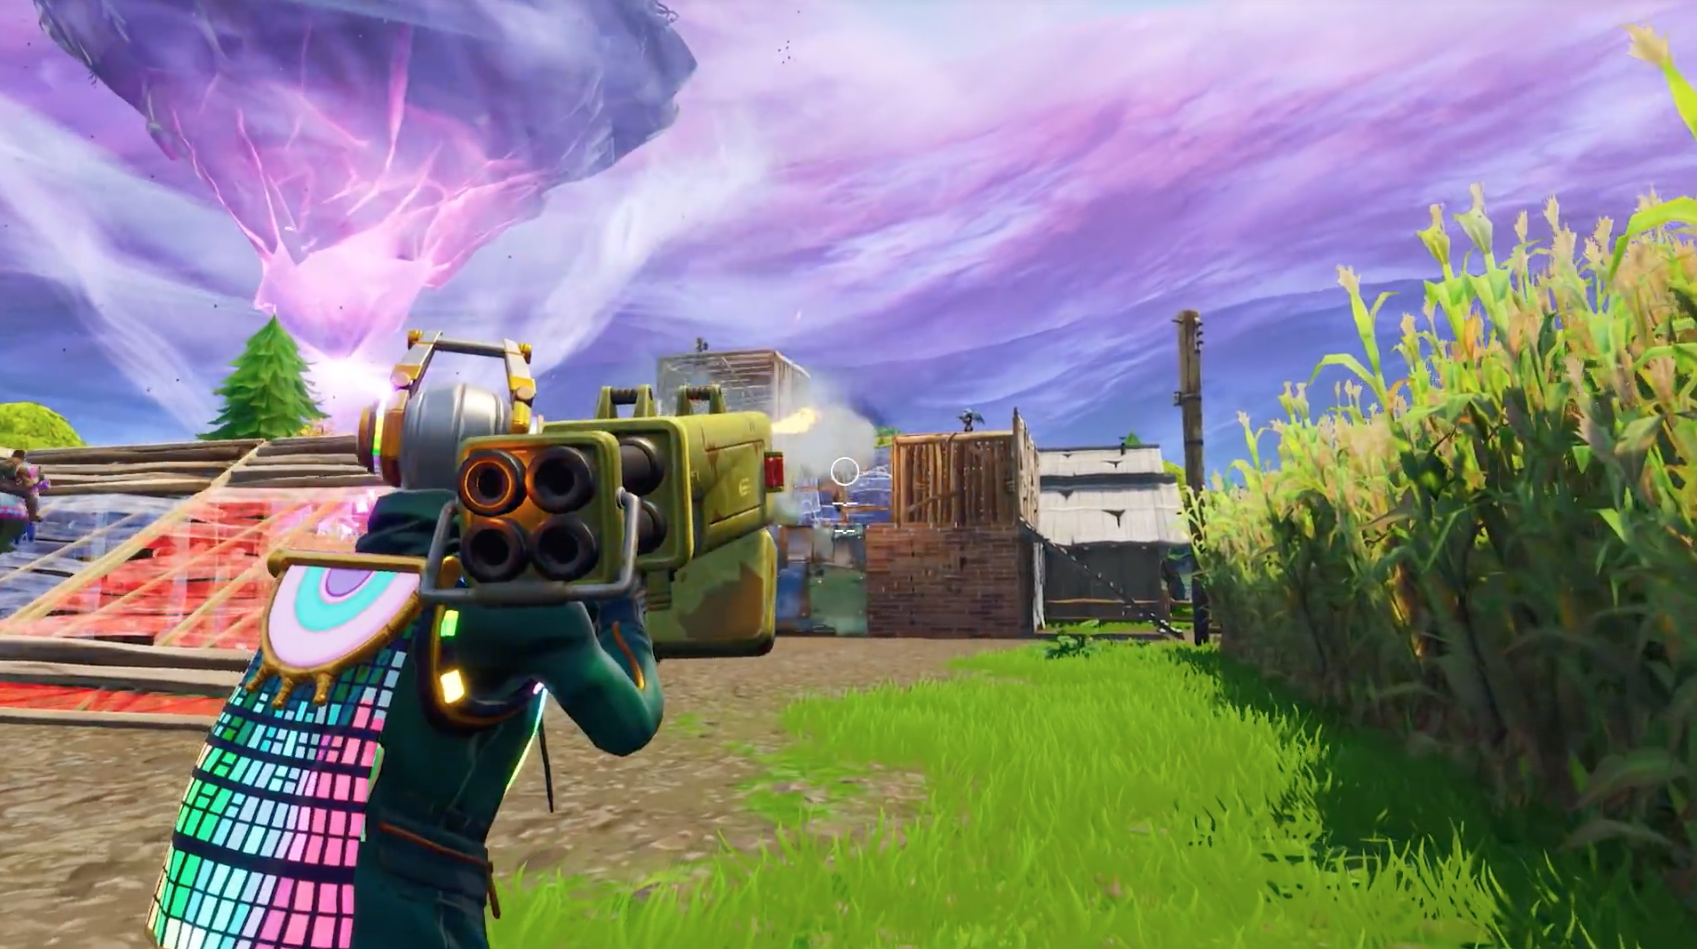 All Android-users can now play Fortnite... if you have a compatible device